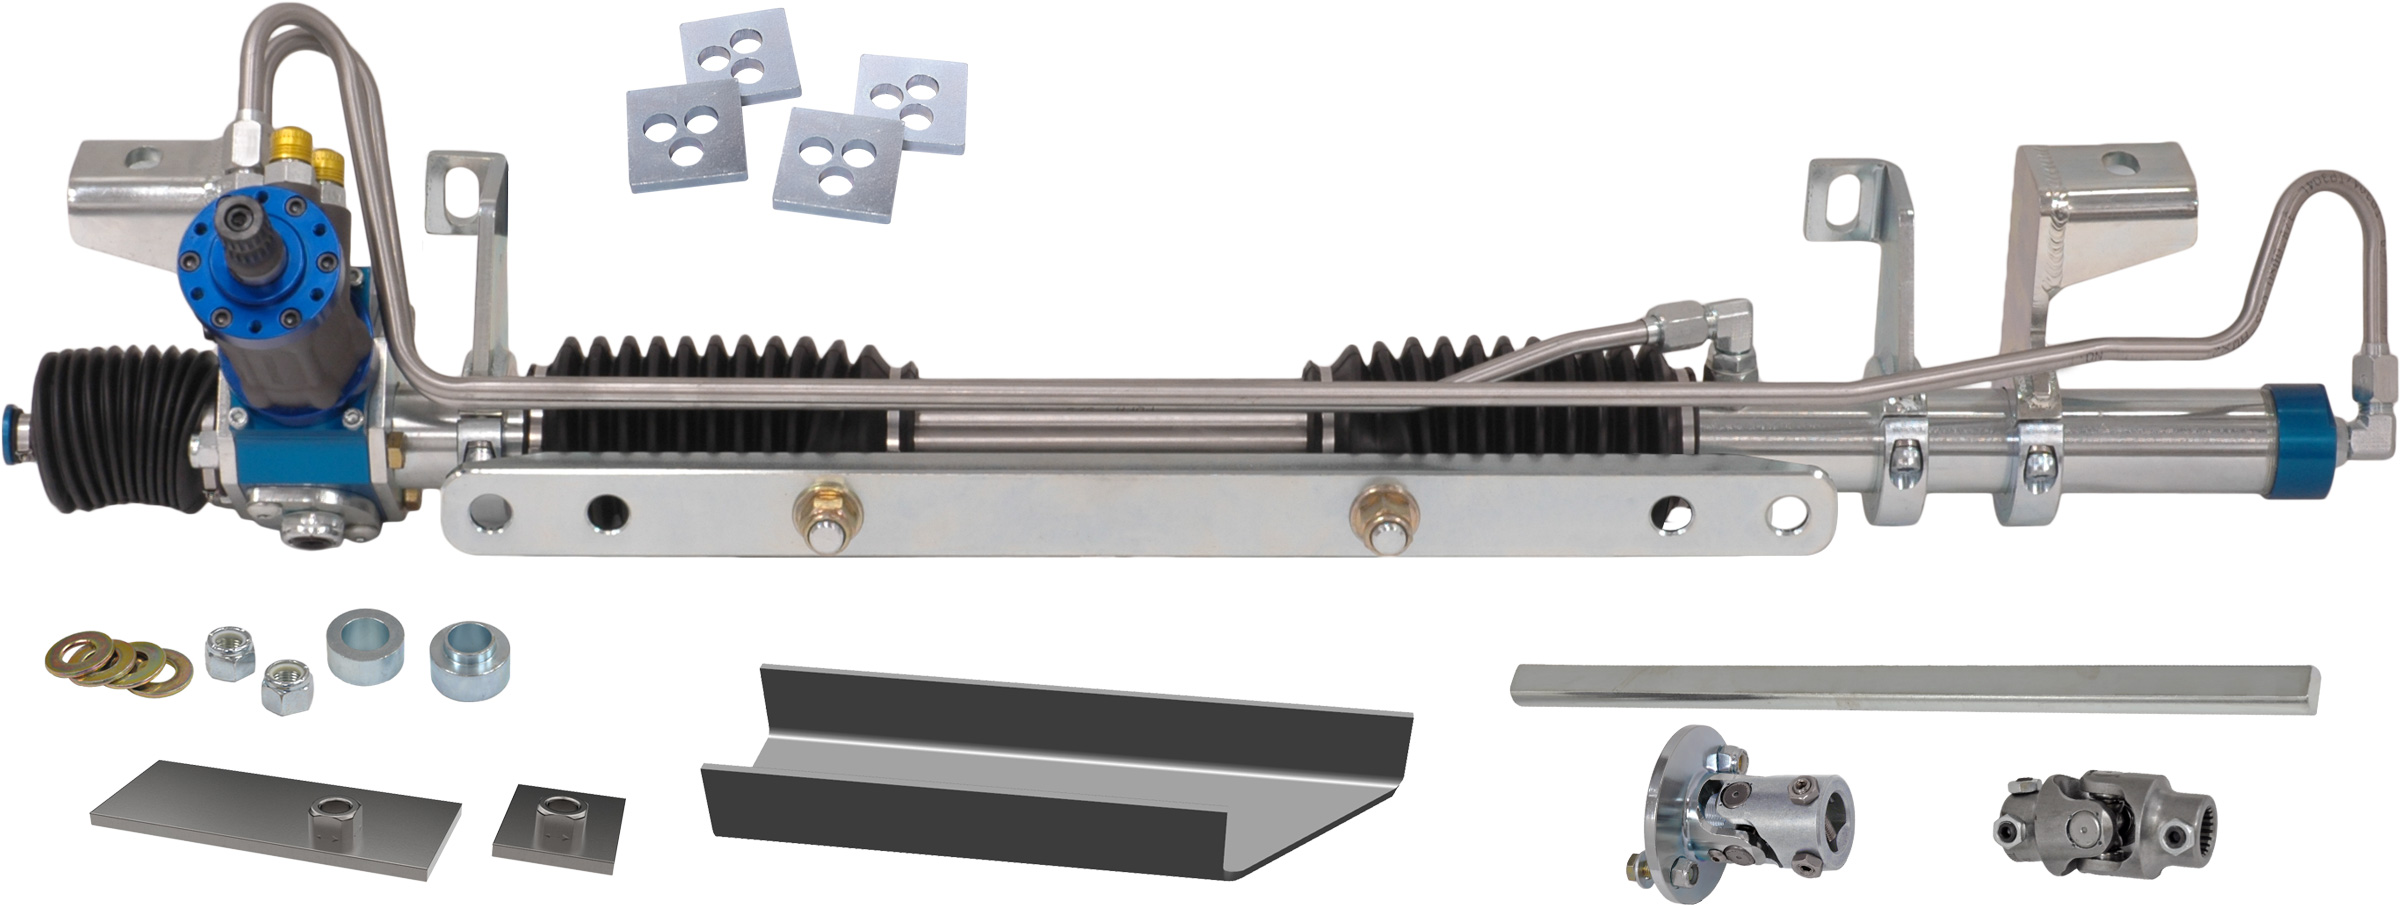 challenger a introduces rack river comprehensive flaming mopar daily manual for connection enthusiast resource and pinion magazine news